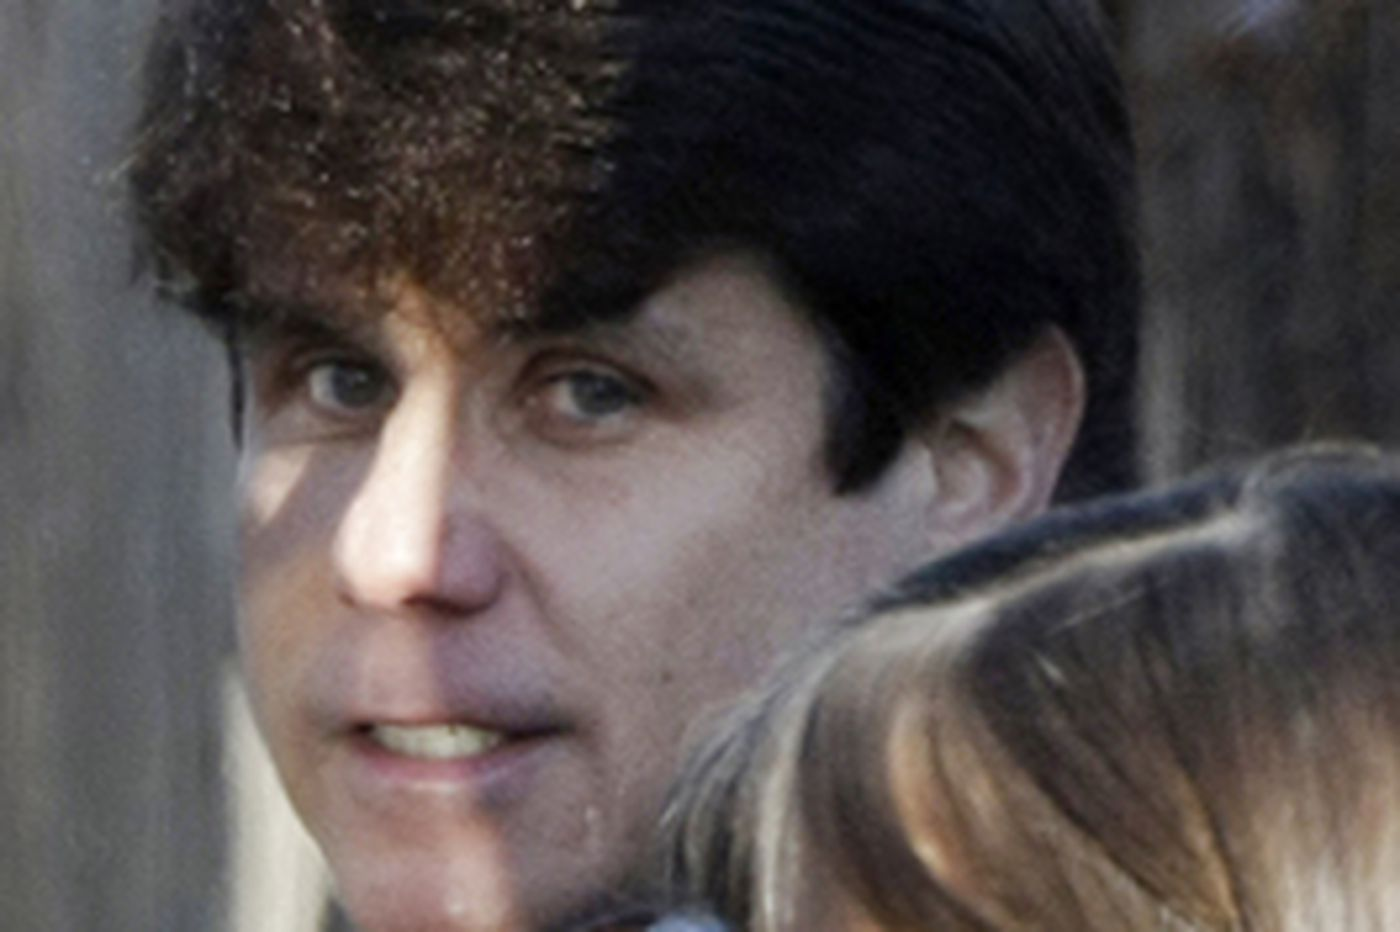 Obama is 'appalled' at Blagojevich charges